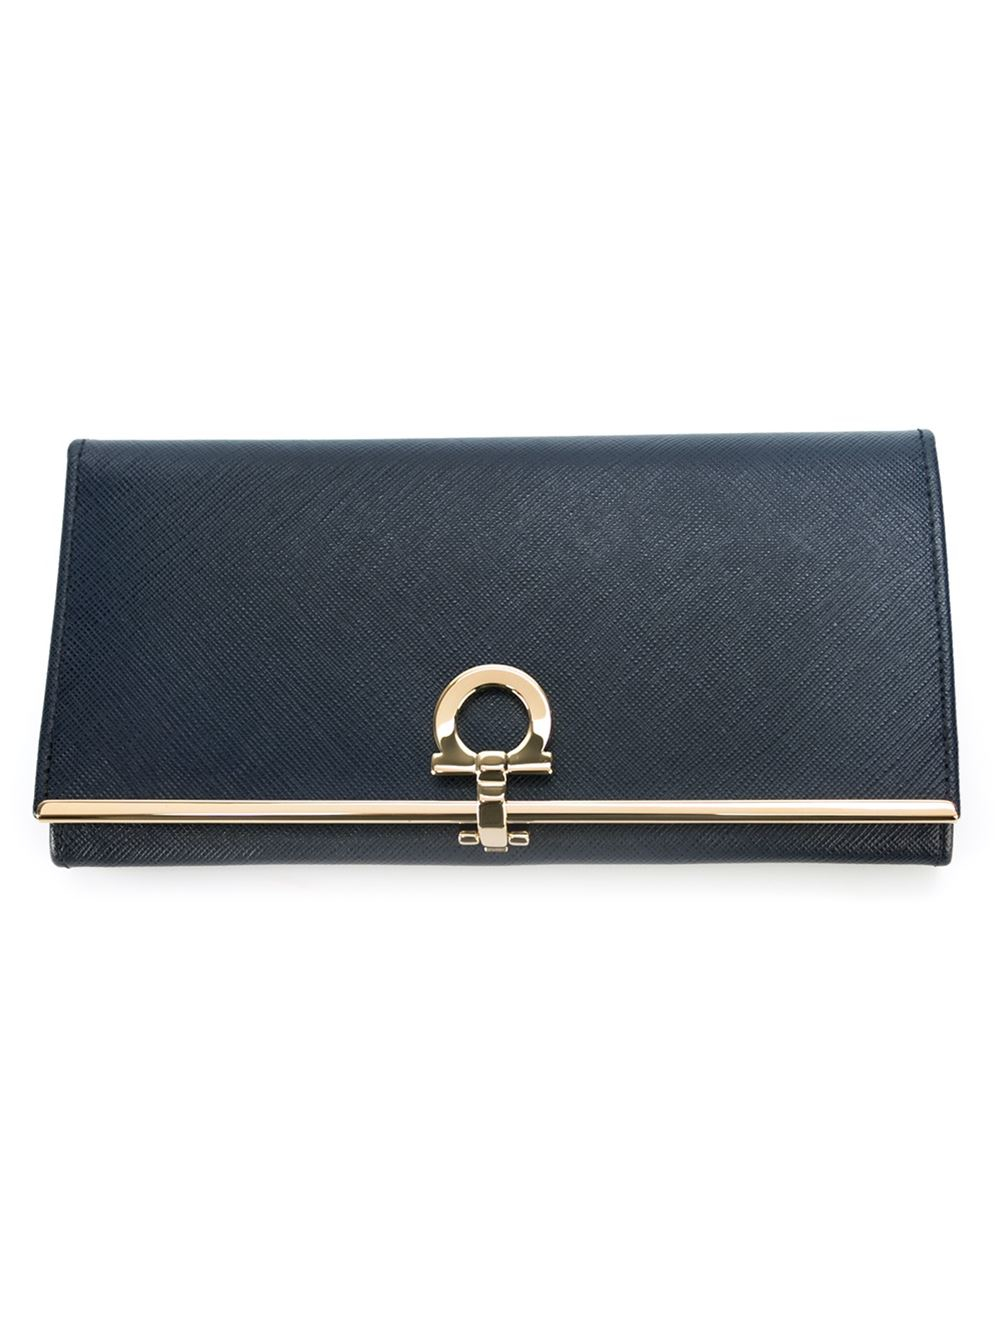 The Latest From Salvatore Ferragamo. In , the veritable Italian fashion house Salvatore Ferragamo, has introduced a new line of wallets. Distinct from prior product lines, wallets by Ferragamo stand apart from other similar designer products in both quality and function.